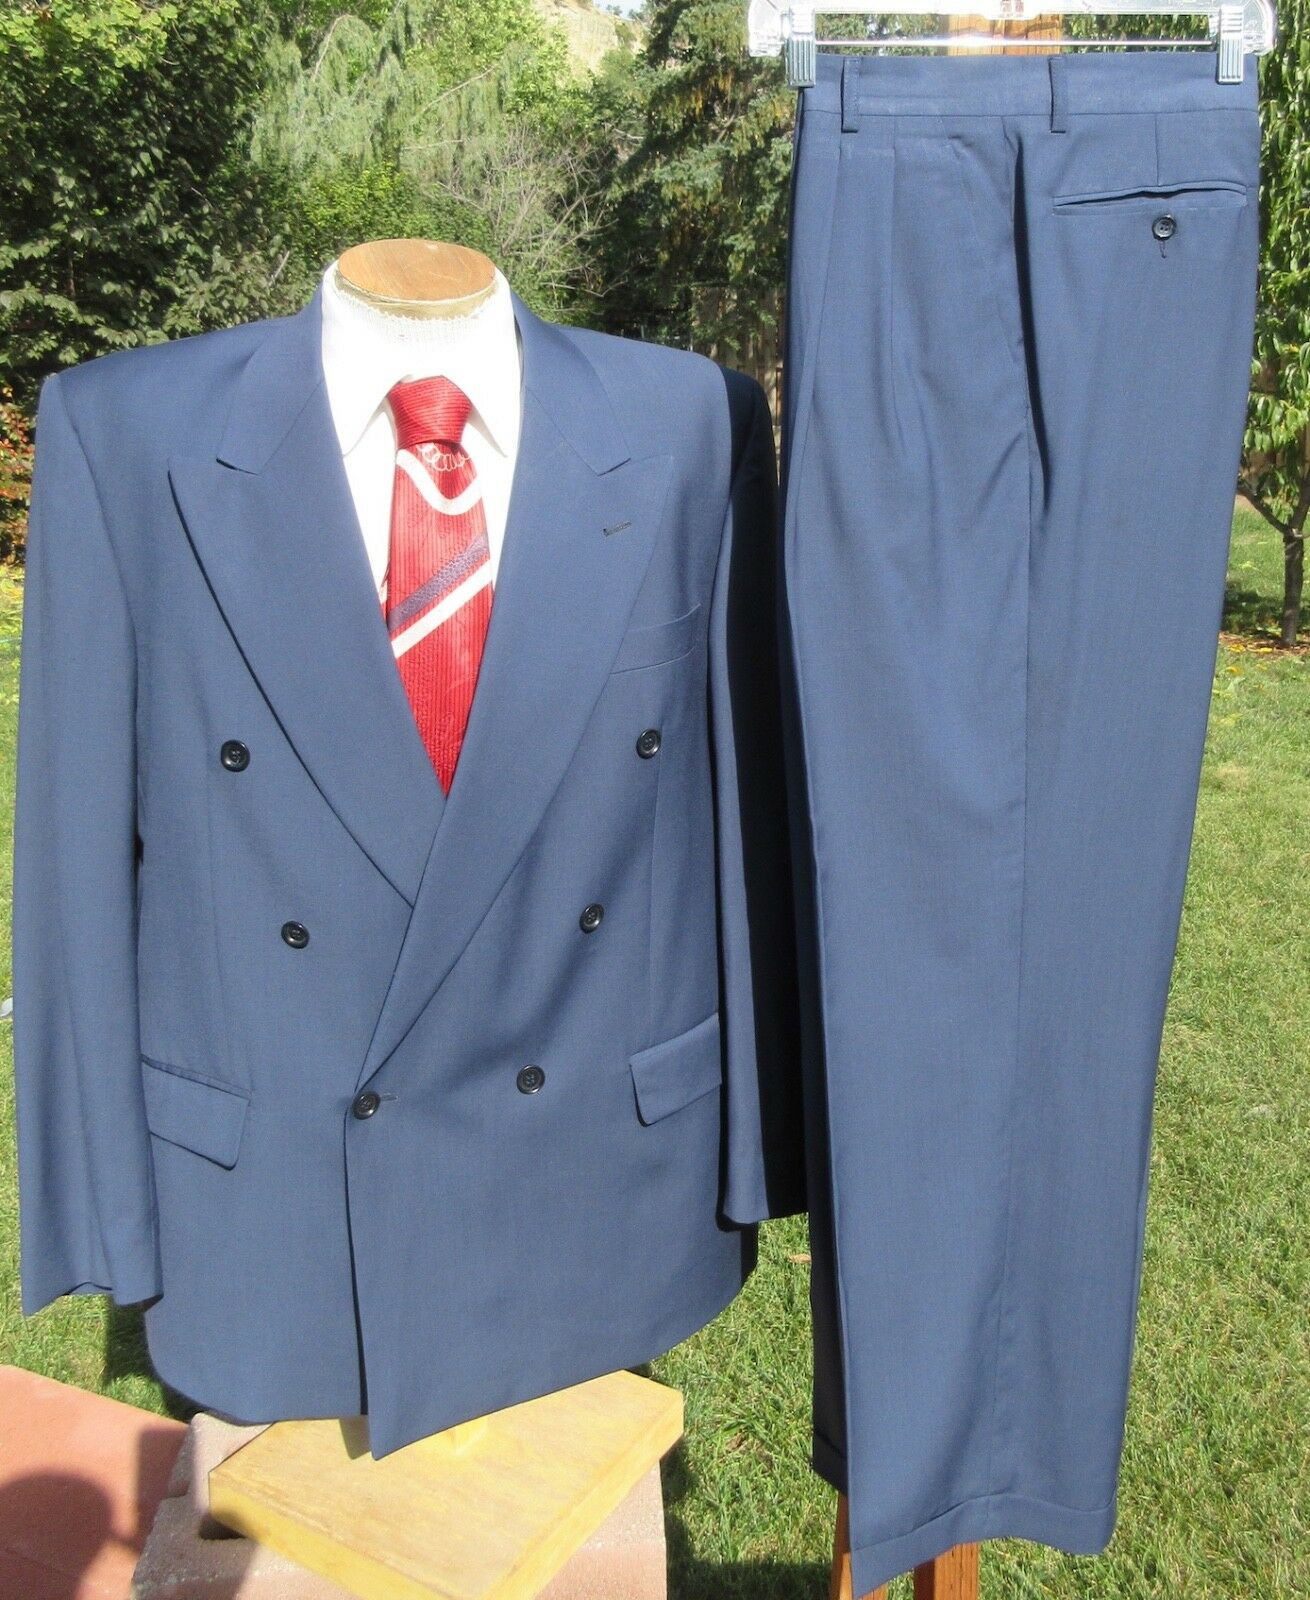 Elegant Double Breasted SUPER 100 Suit 44R 35x29 - bluee Italian Wool by CACHAREL